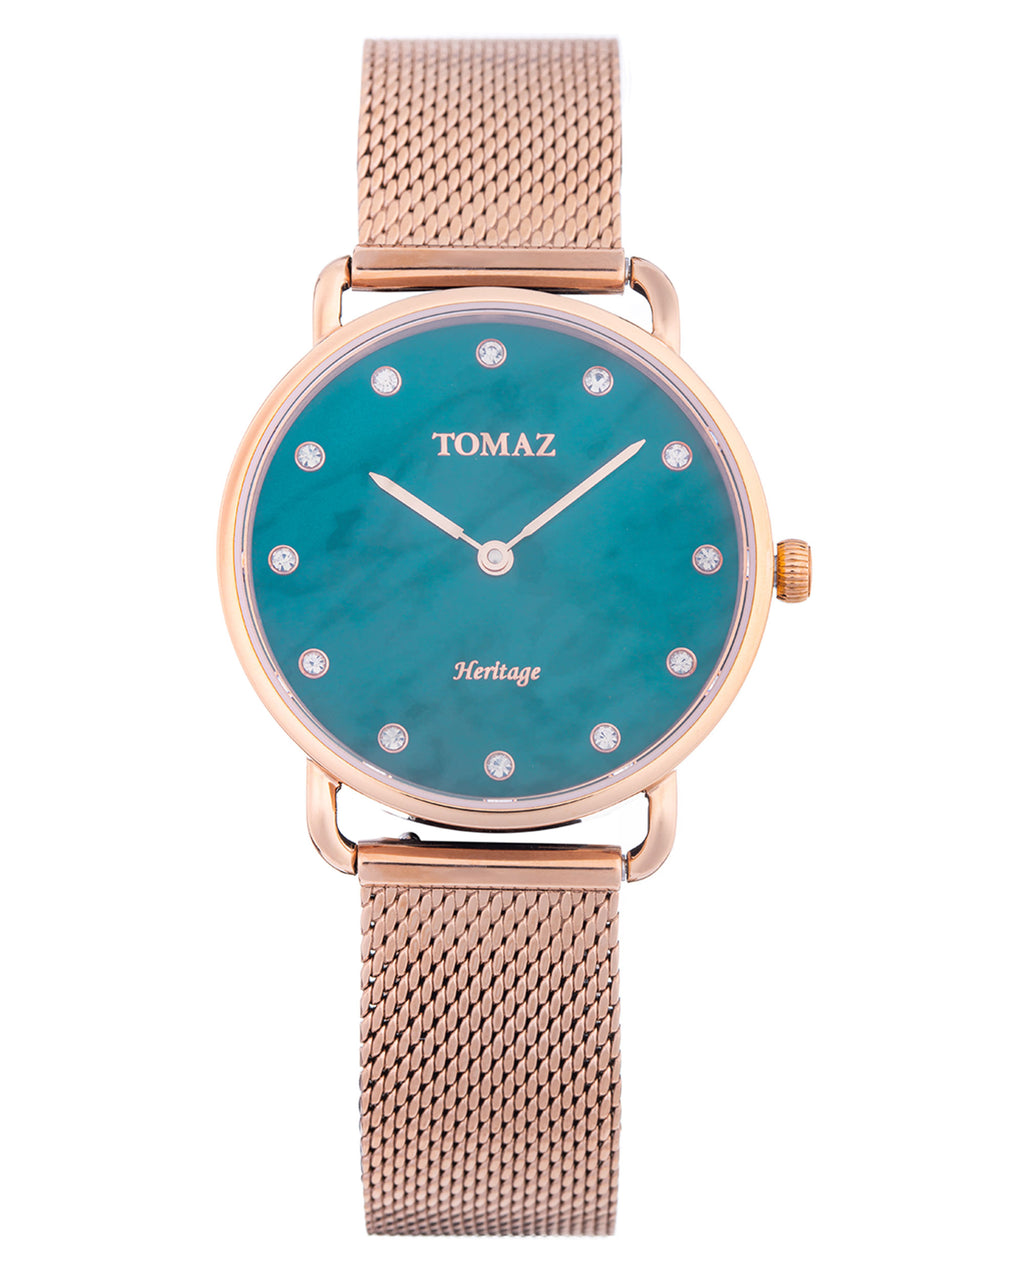 Tomaz Ladies Watch G1L-D5 (Rose Gold/Green Marble)